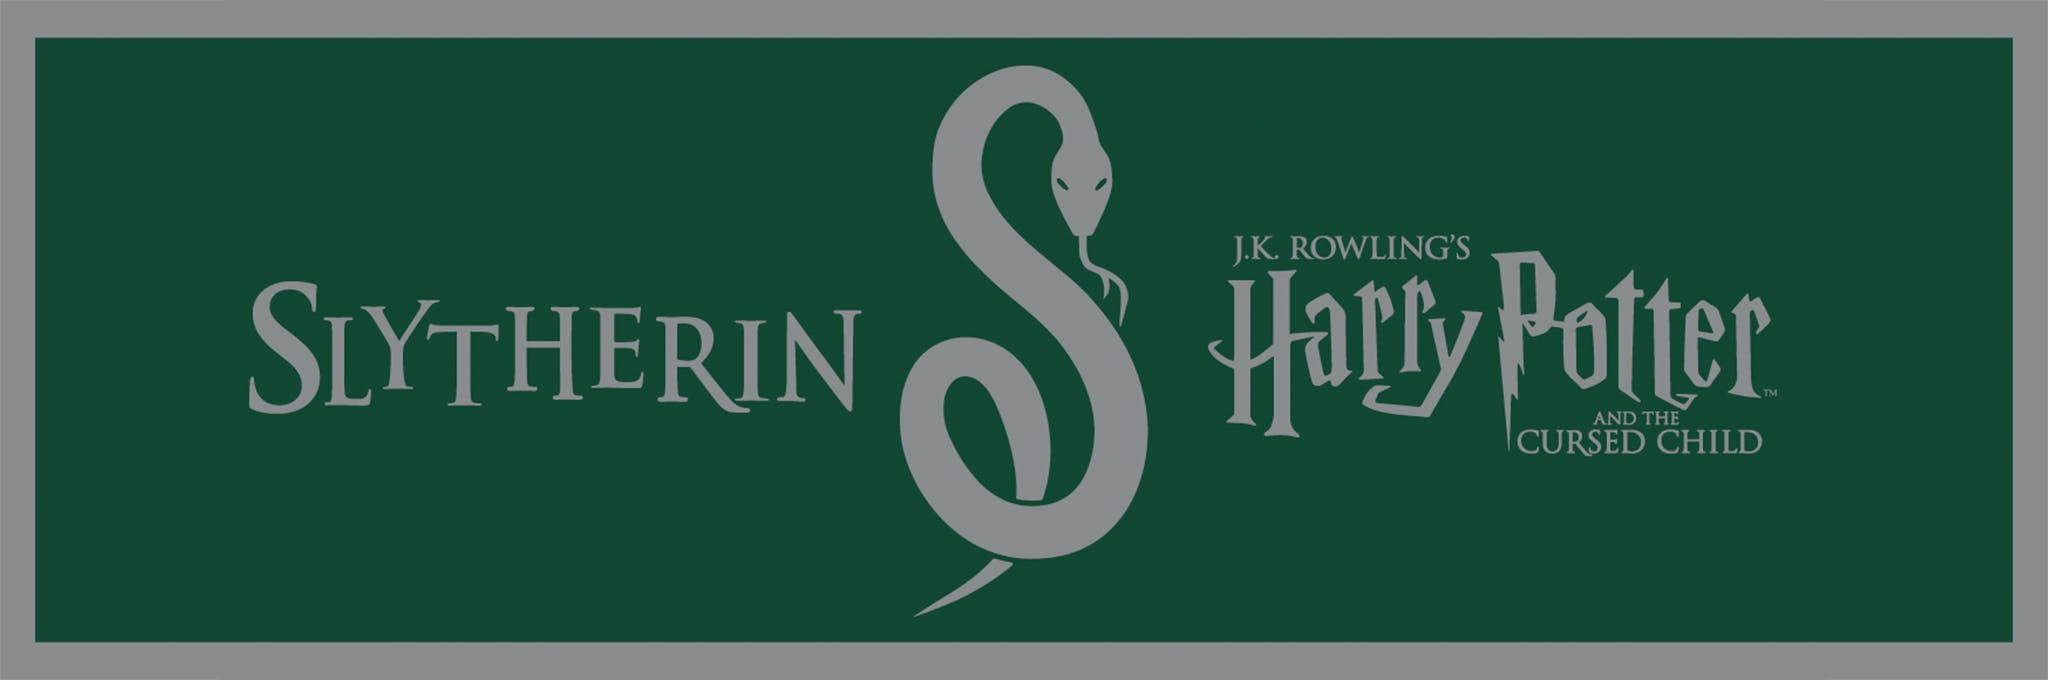 Harry Potter and the Cursed Child - Slytherin Lottery Logo